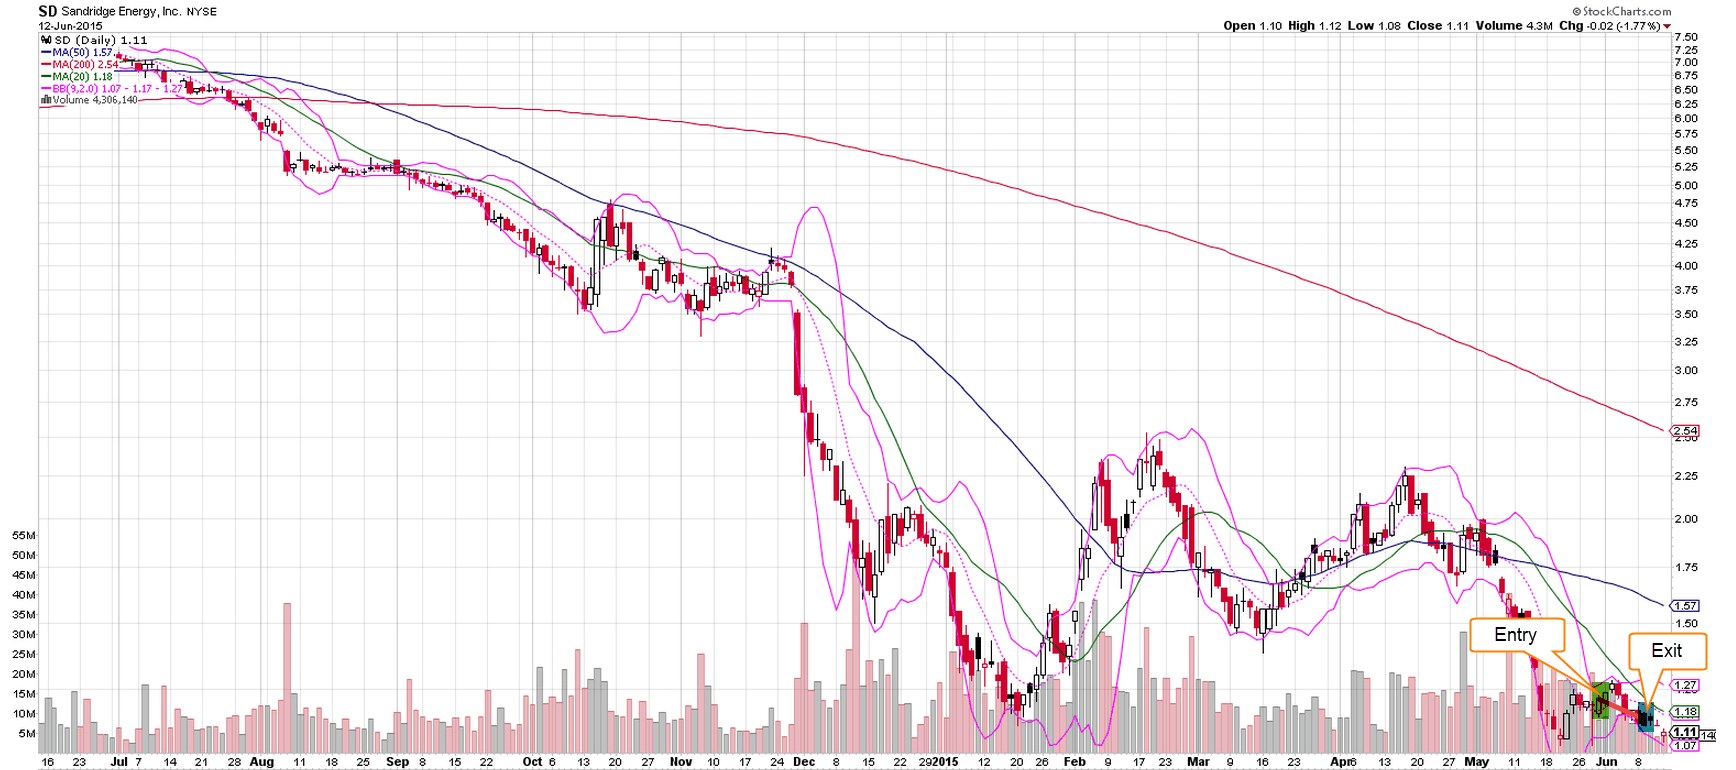 SD Trade Completion - 9.6.15